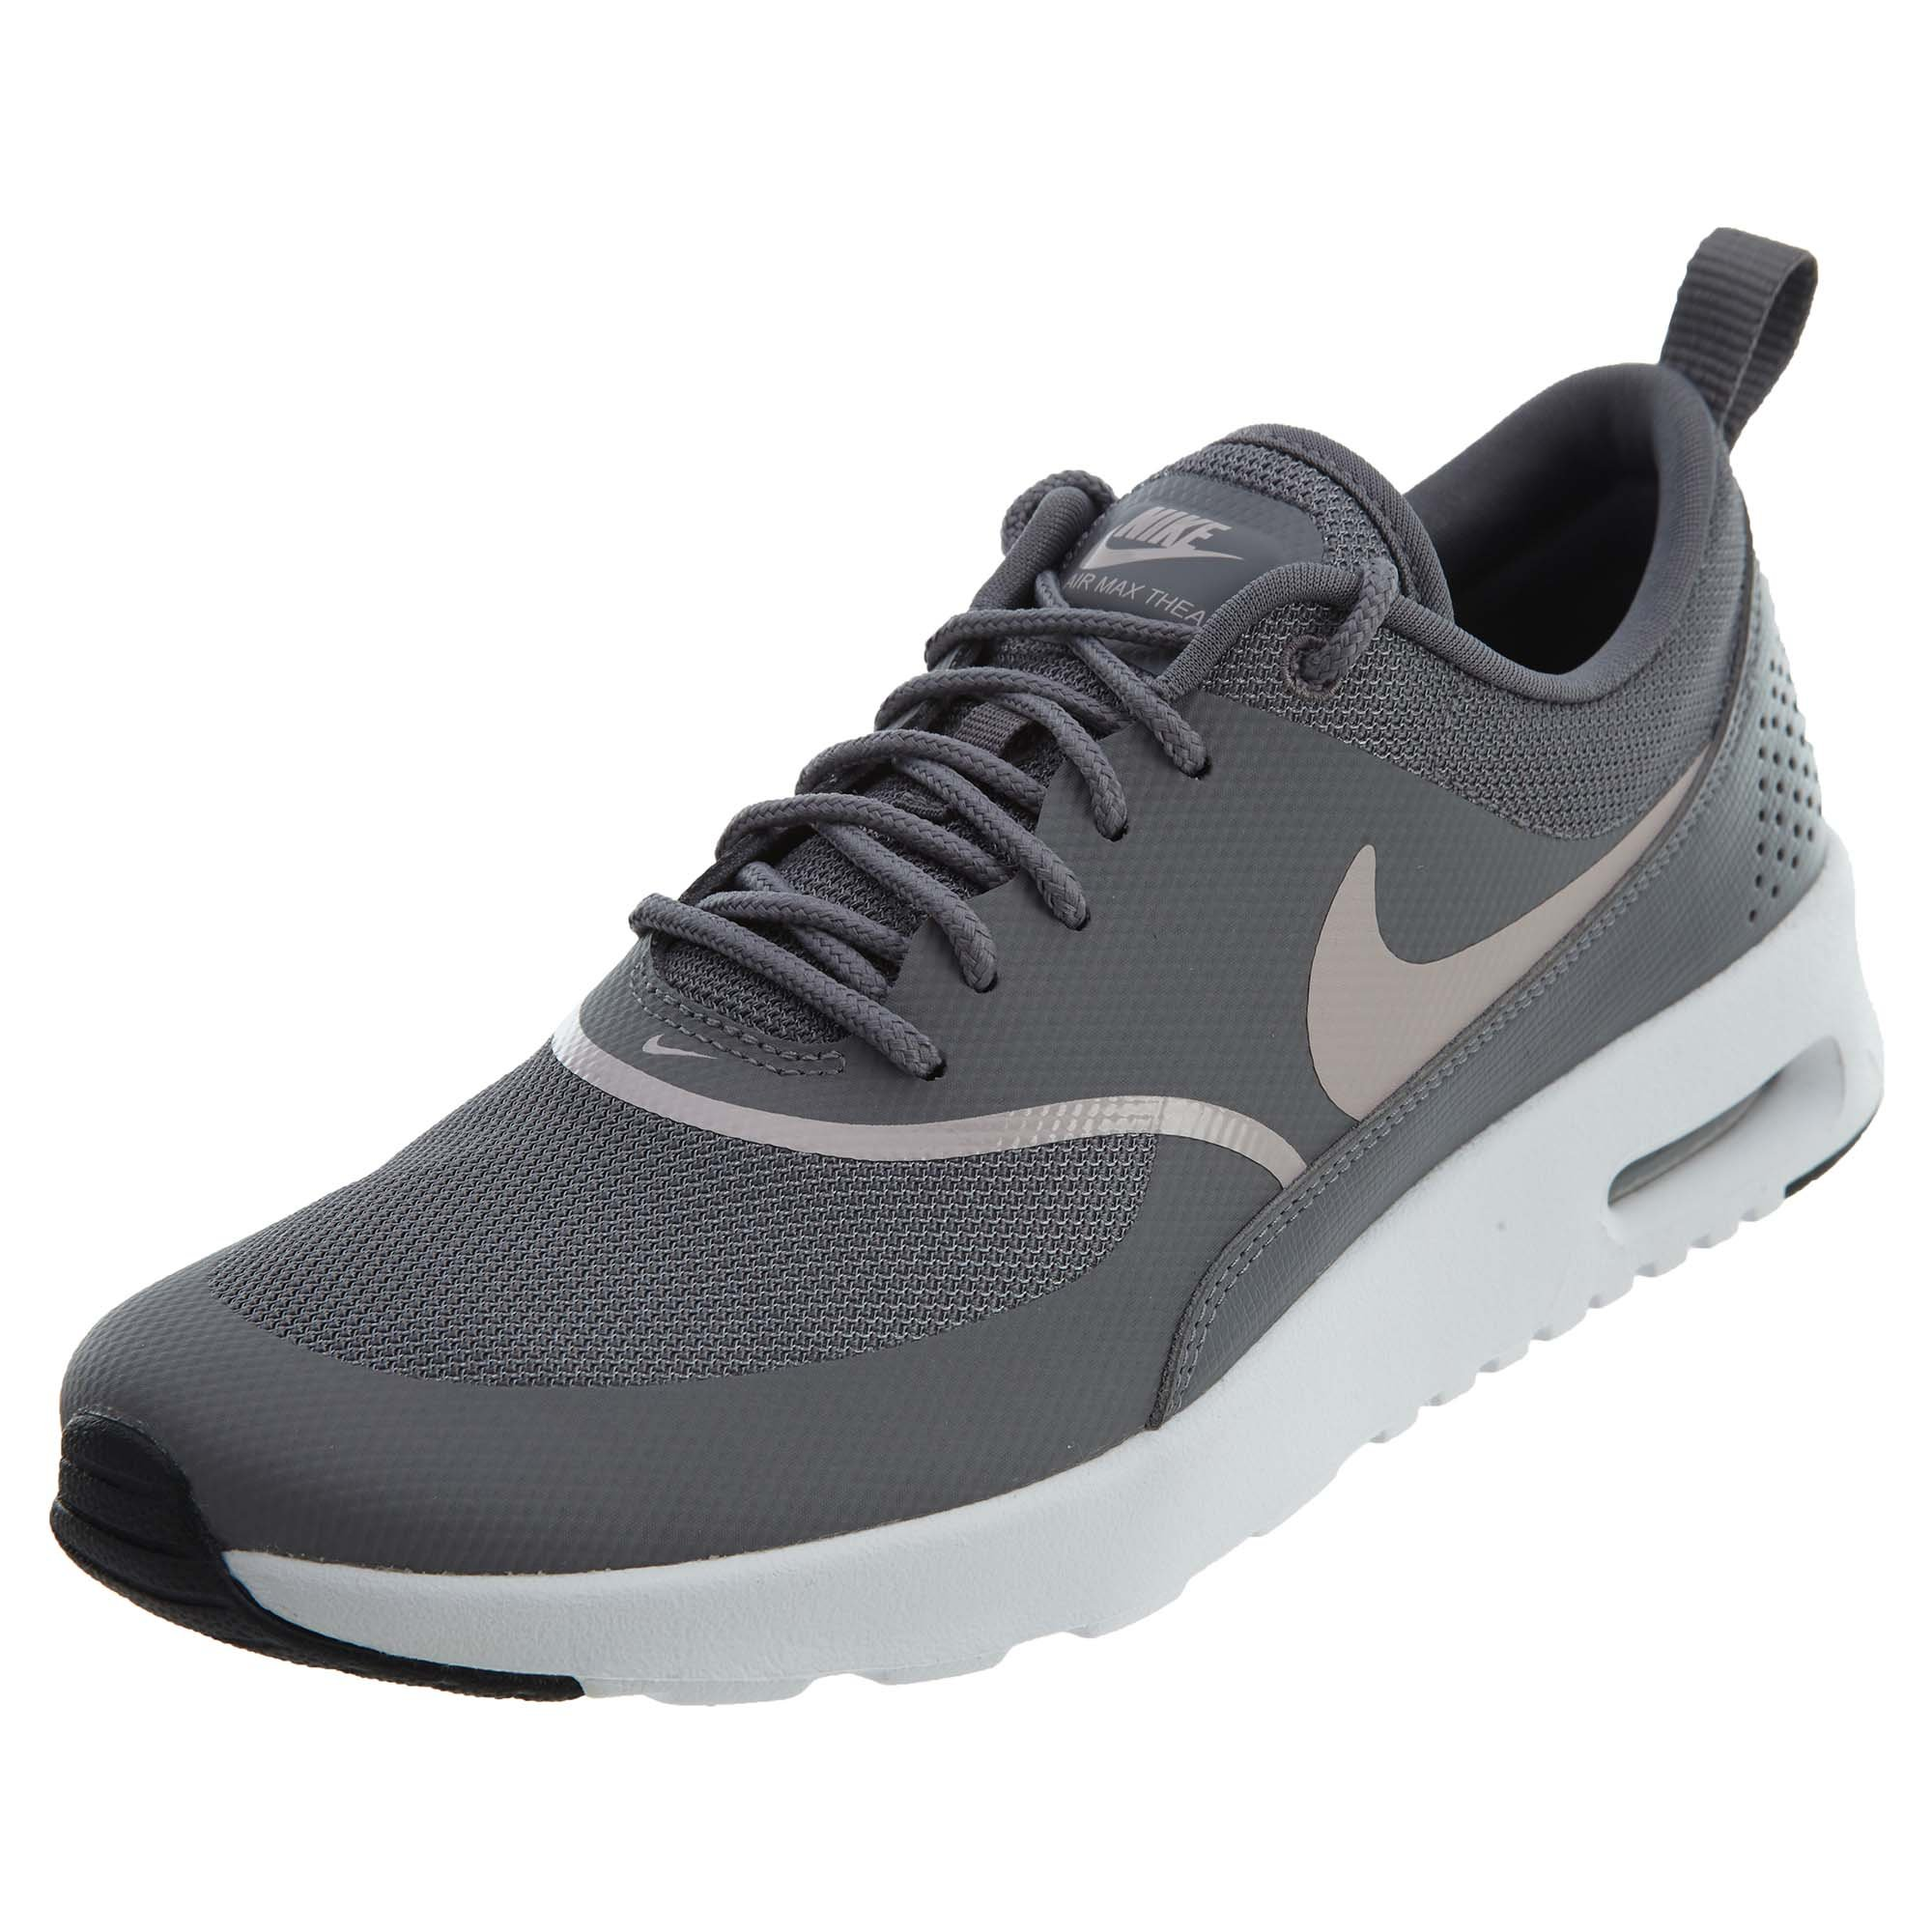 save off 1c364 710ba Galleon - Nike Women s Air Max Thea Low-Top Sneakers, Grey  (Gunsmoke Particle Rose-Black 029), 7.5 UK 42 EU